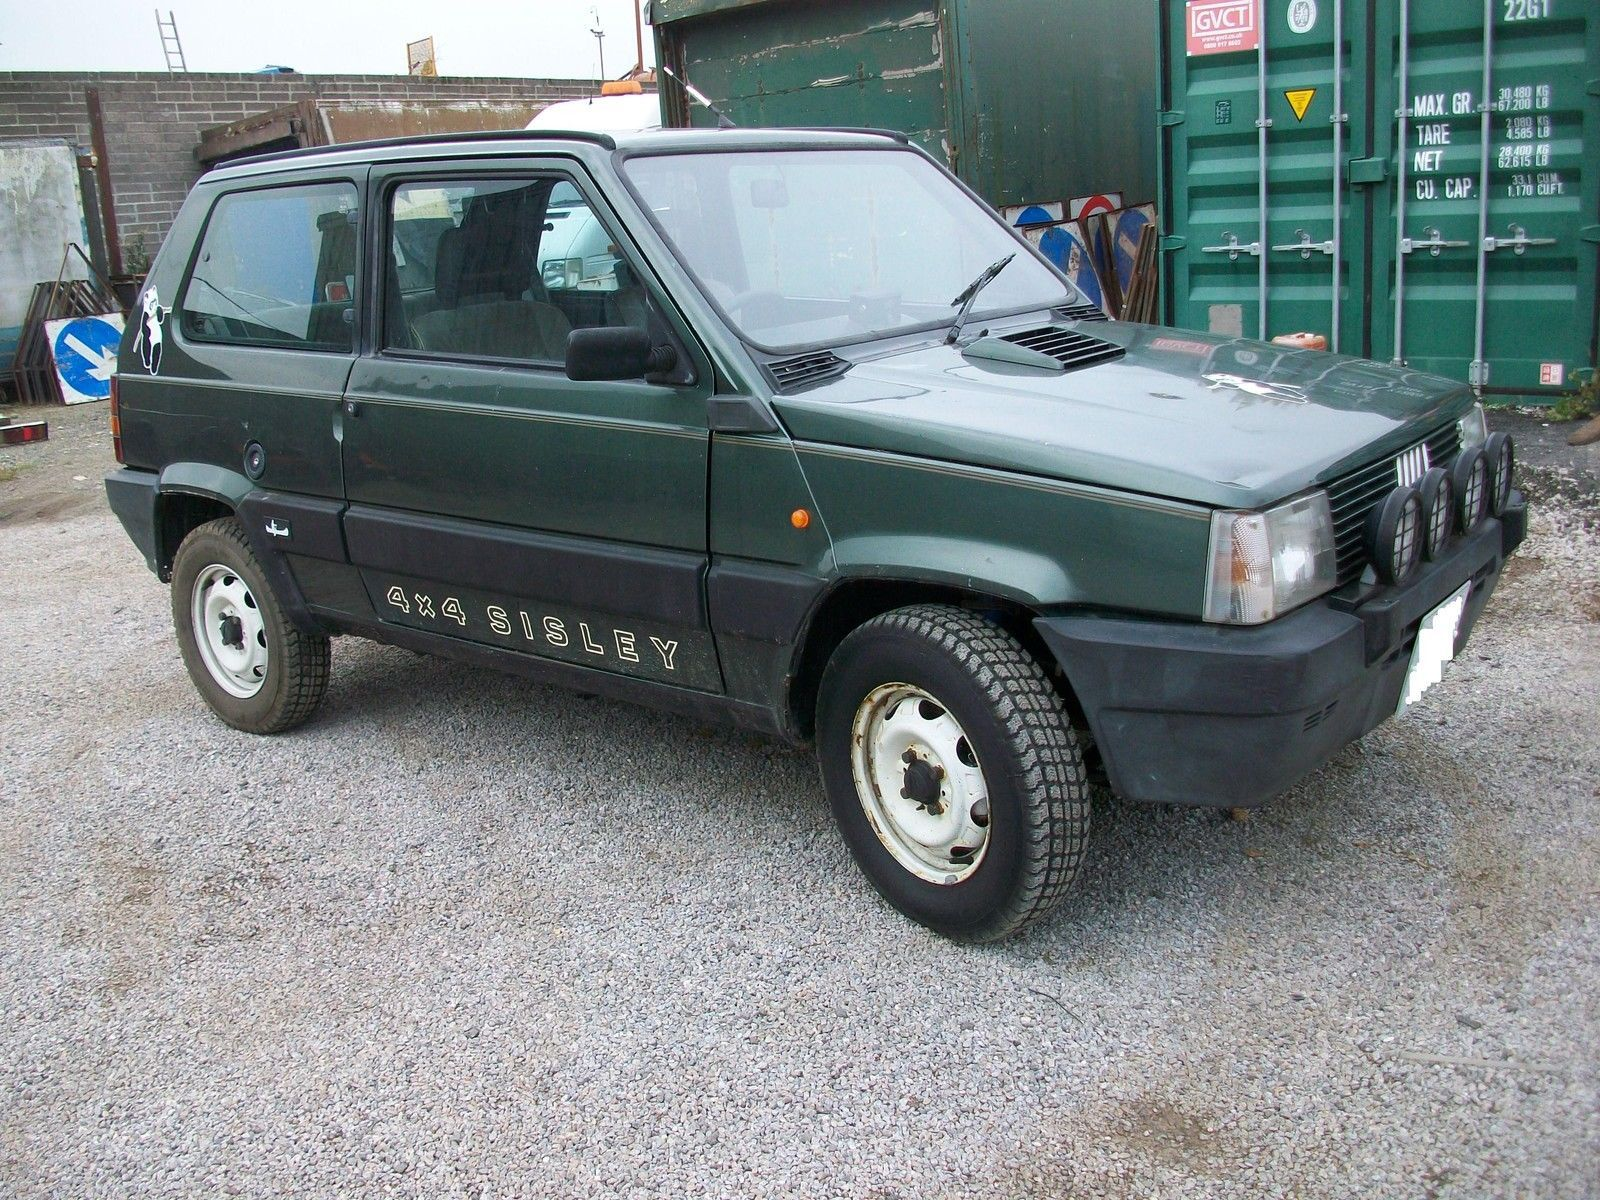 fiat panda 4x4 sisley 1991 new mot ebay pandinhas pinterest fiat panda fiat and 4x4. Black Bedroom Furniture Sets. Home Design Ideas